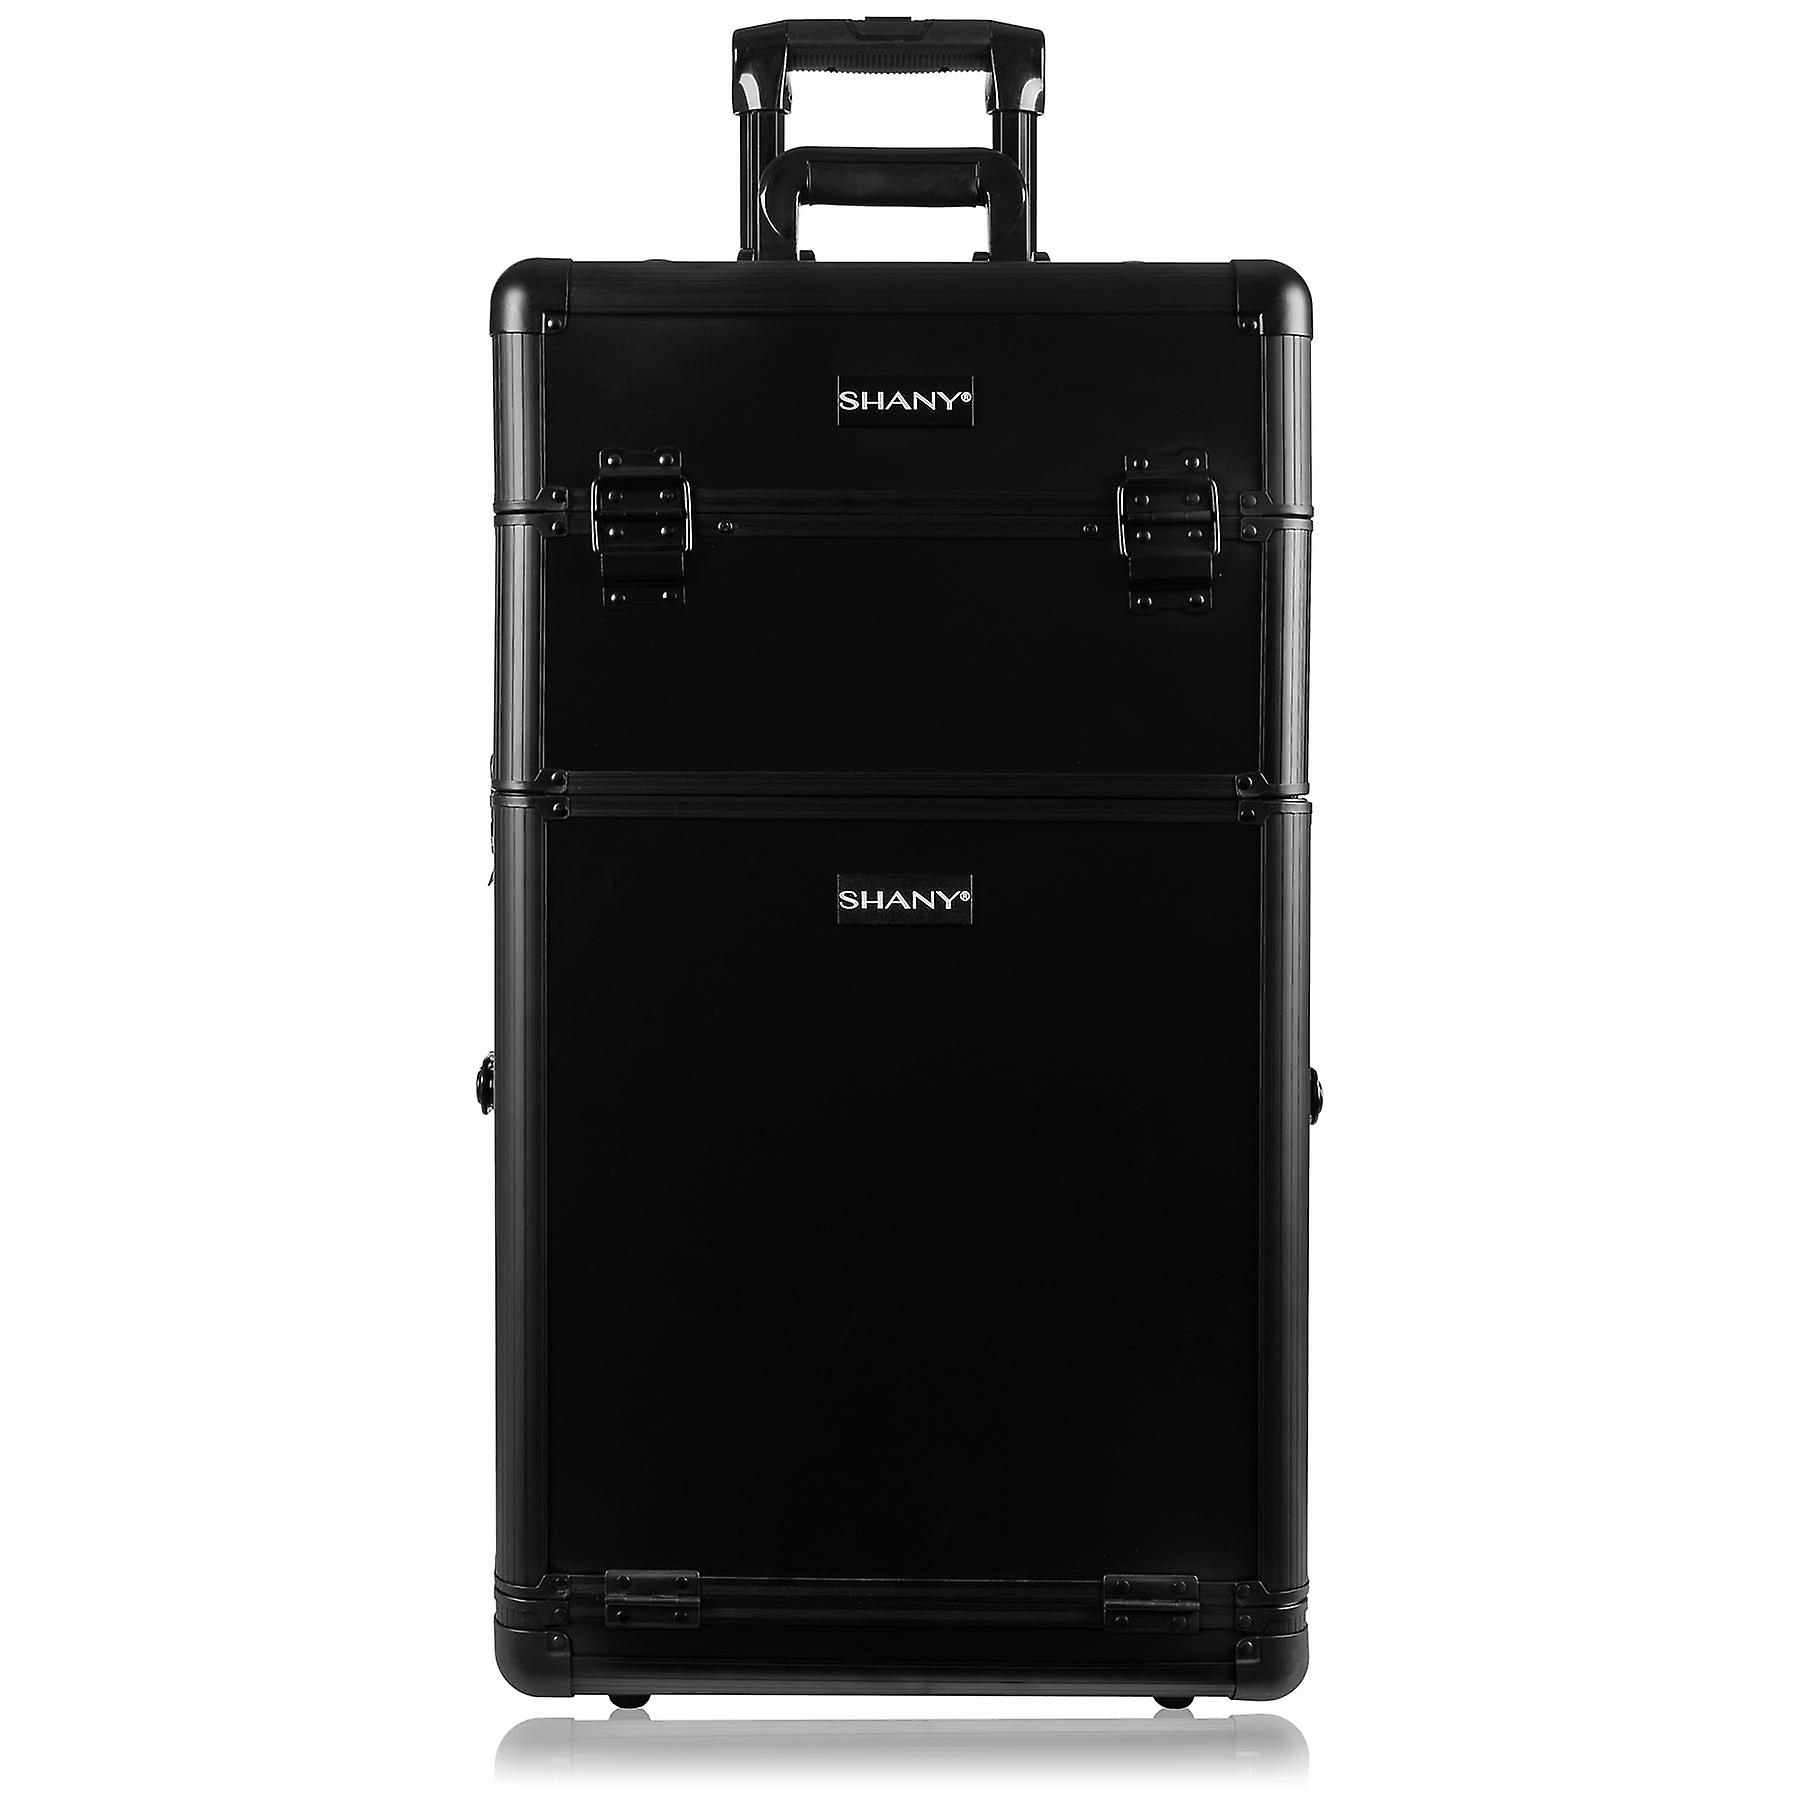 SHANY Rebel Trolley Cosmetics Case and Storage - Professional Makeup Artist Train Case with Multiple Compartments - BLACK